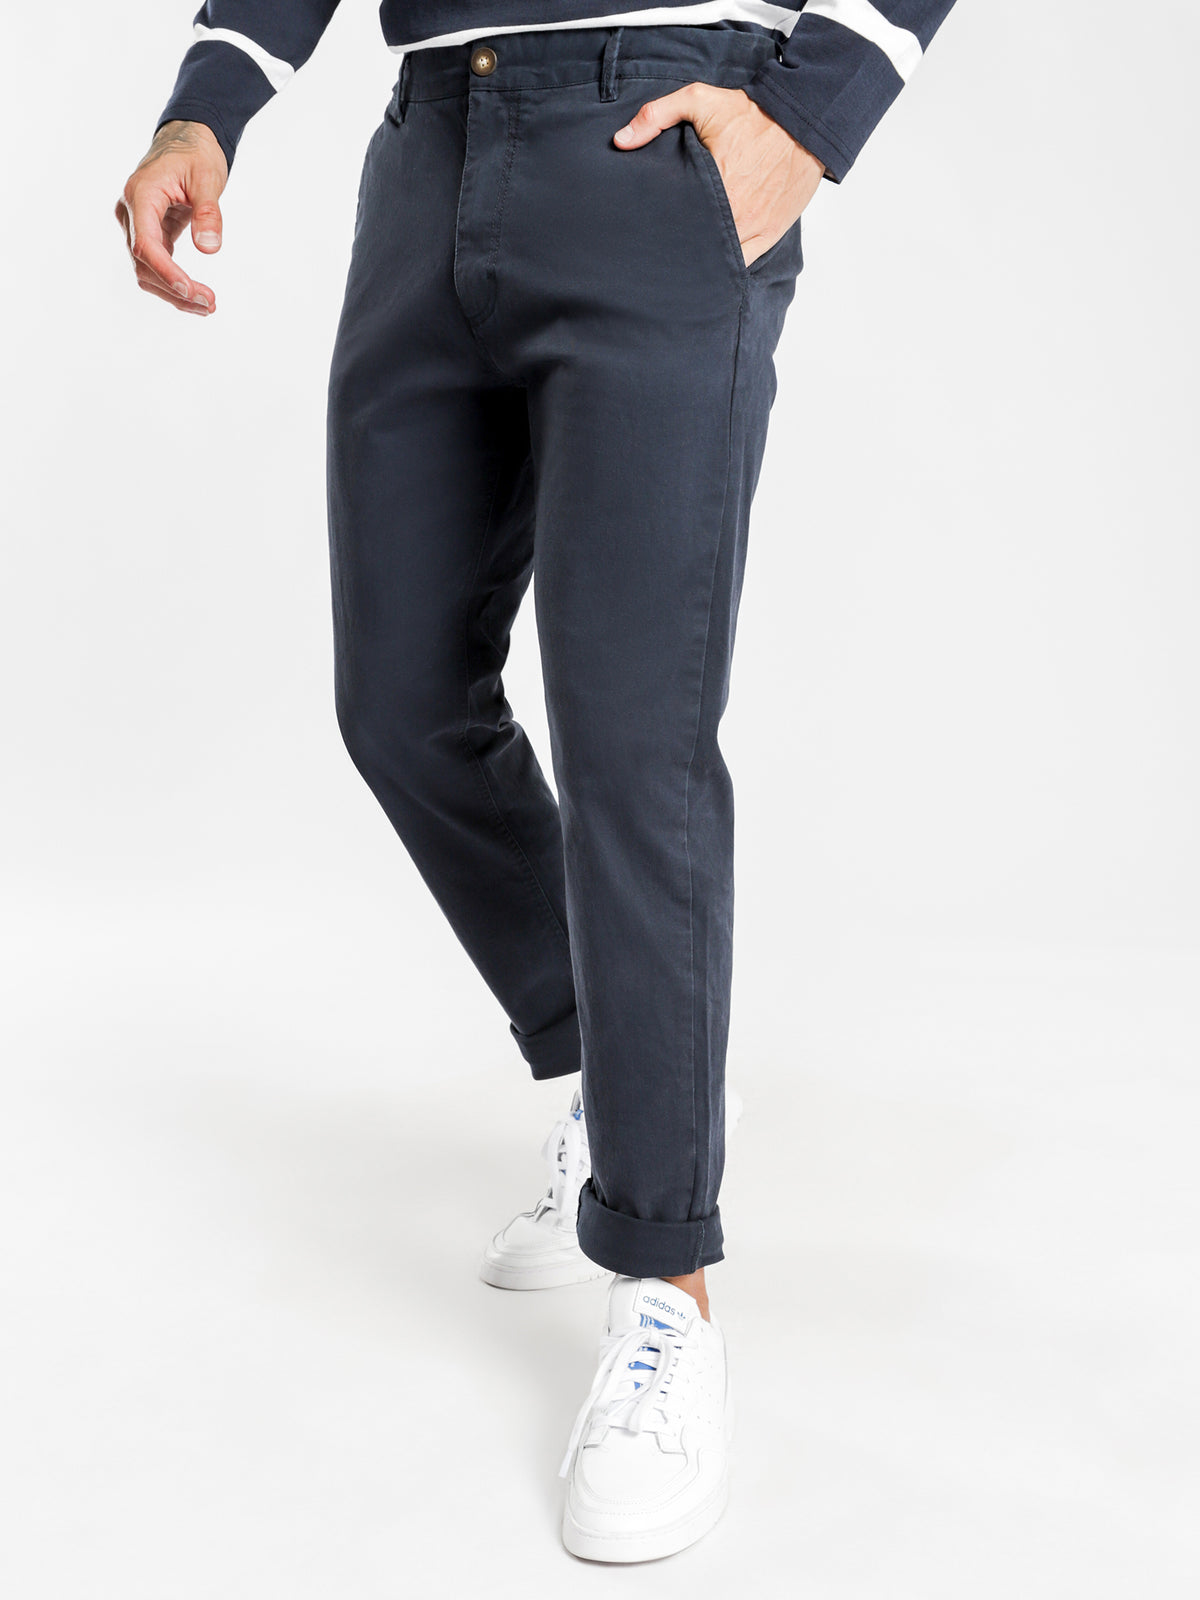 Hunter Chino Pant in Navy Blue